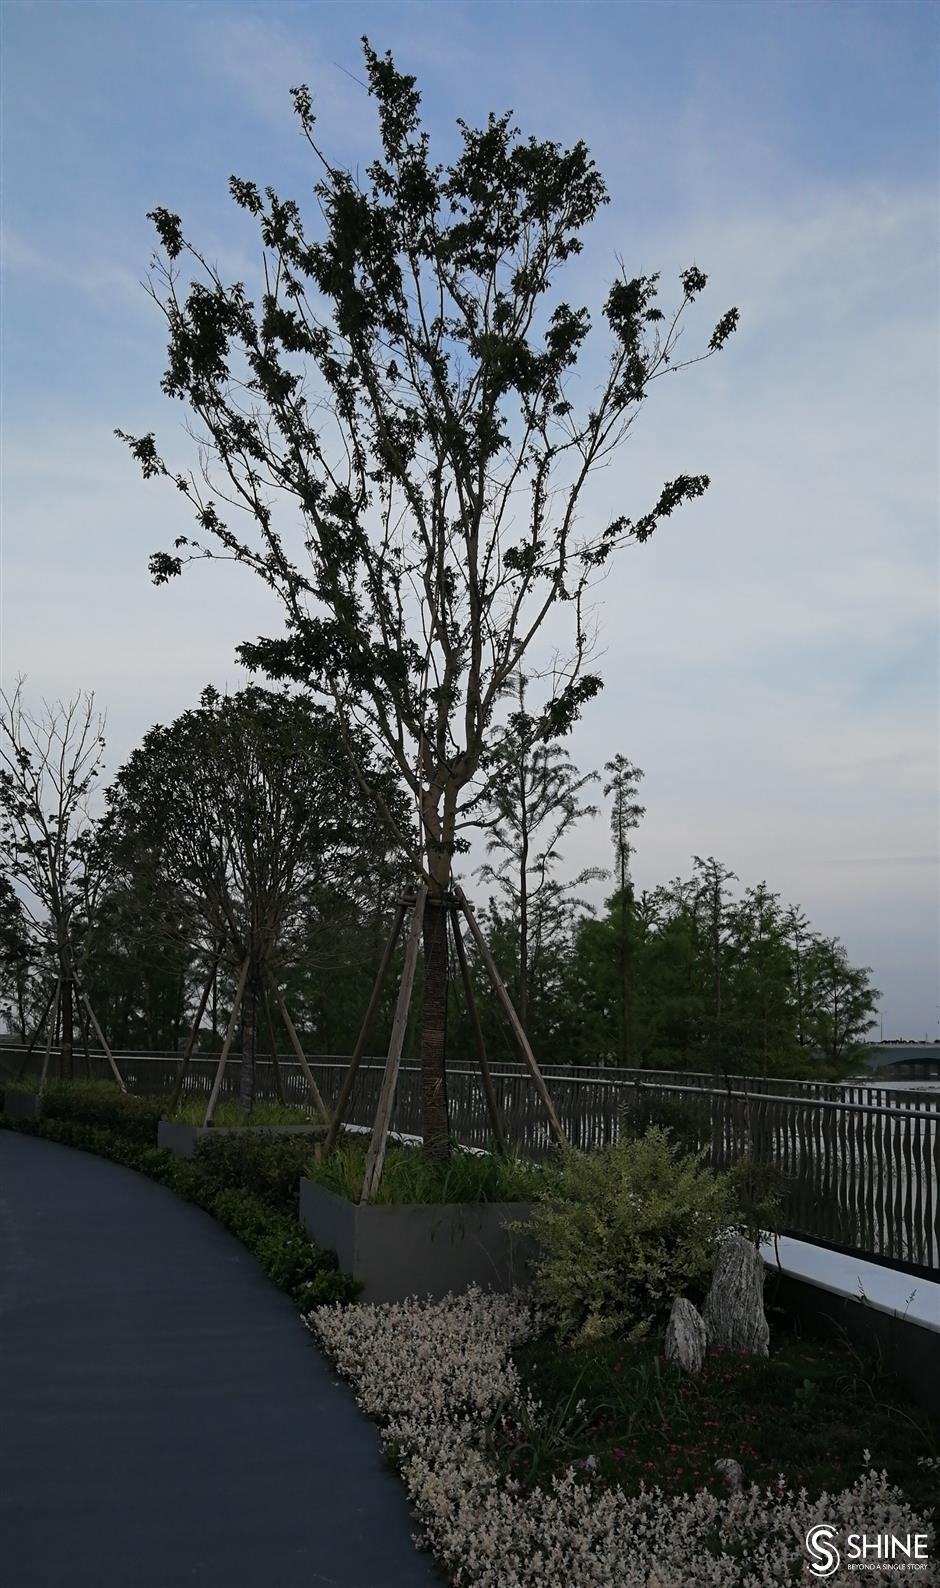 Pedestrian bridge a source of life for nature and people